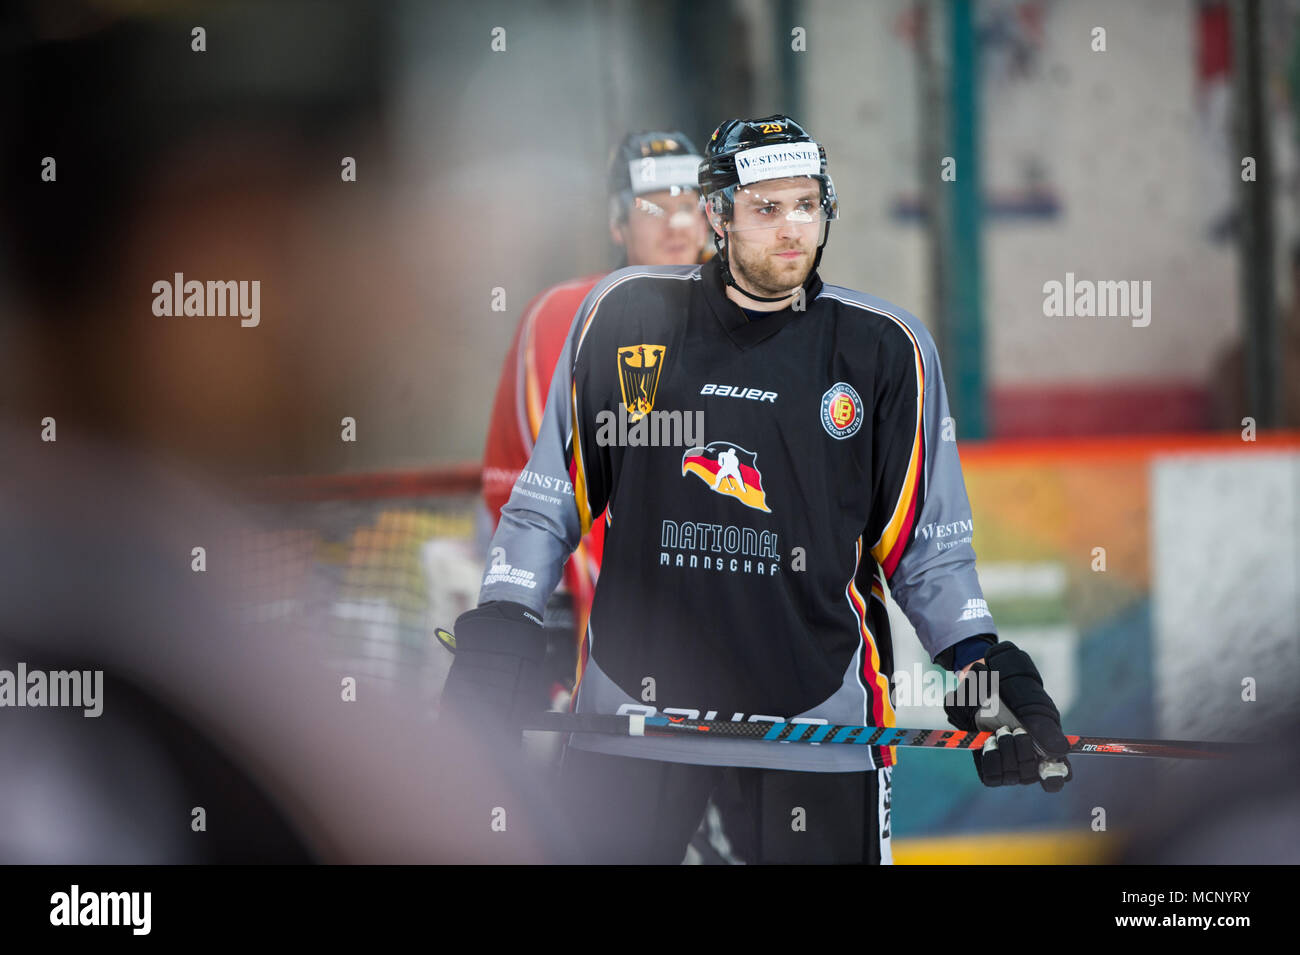 17 April 2018, Germany, Berlin: Leon Draisaitl (c) training with the Germany ice hockey team at the Wellblechpalast ice hockey arena. Germany face France on 21 April. Photo: Arne Bänsch/dpa - Stock Image